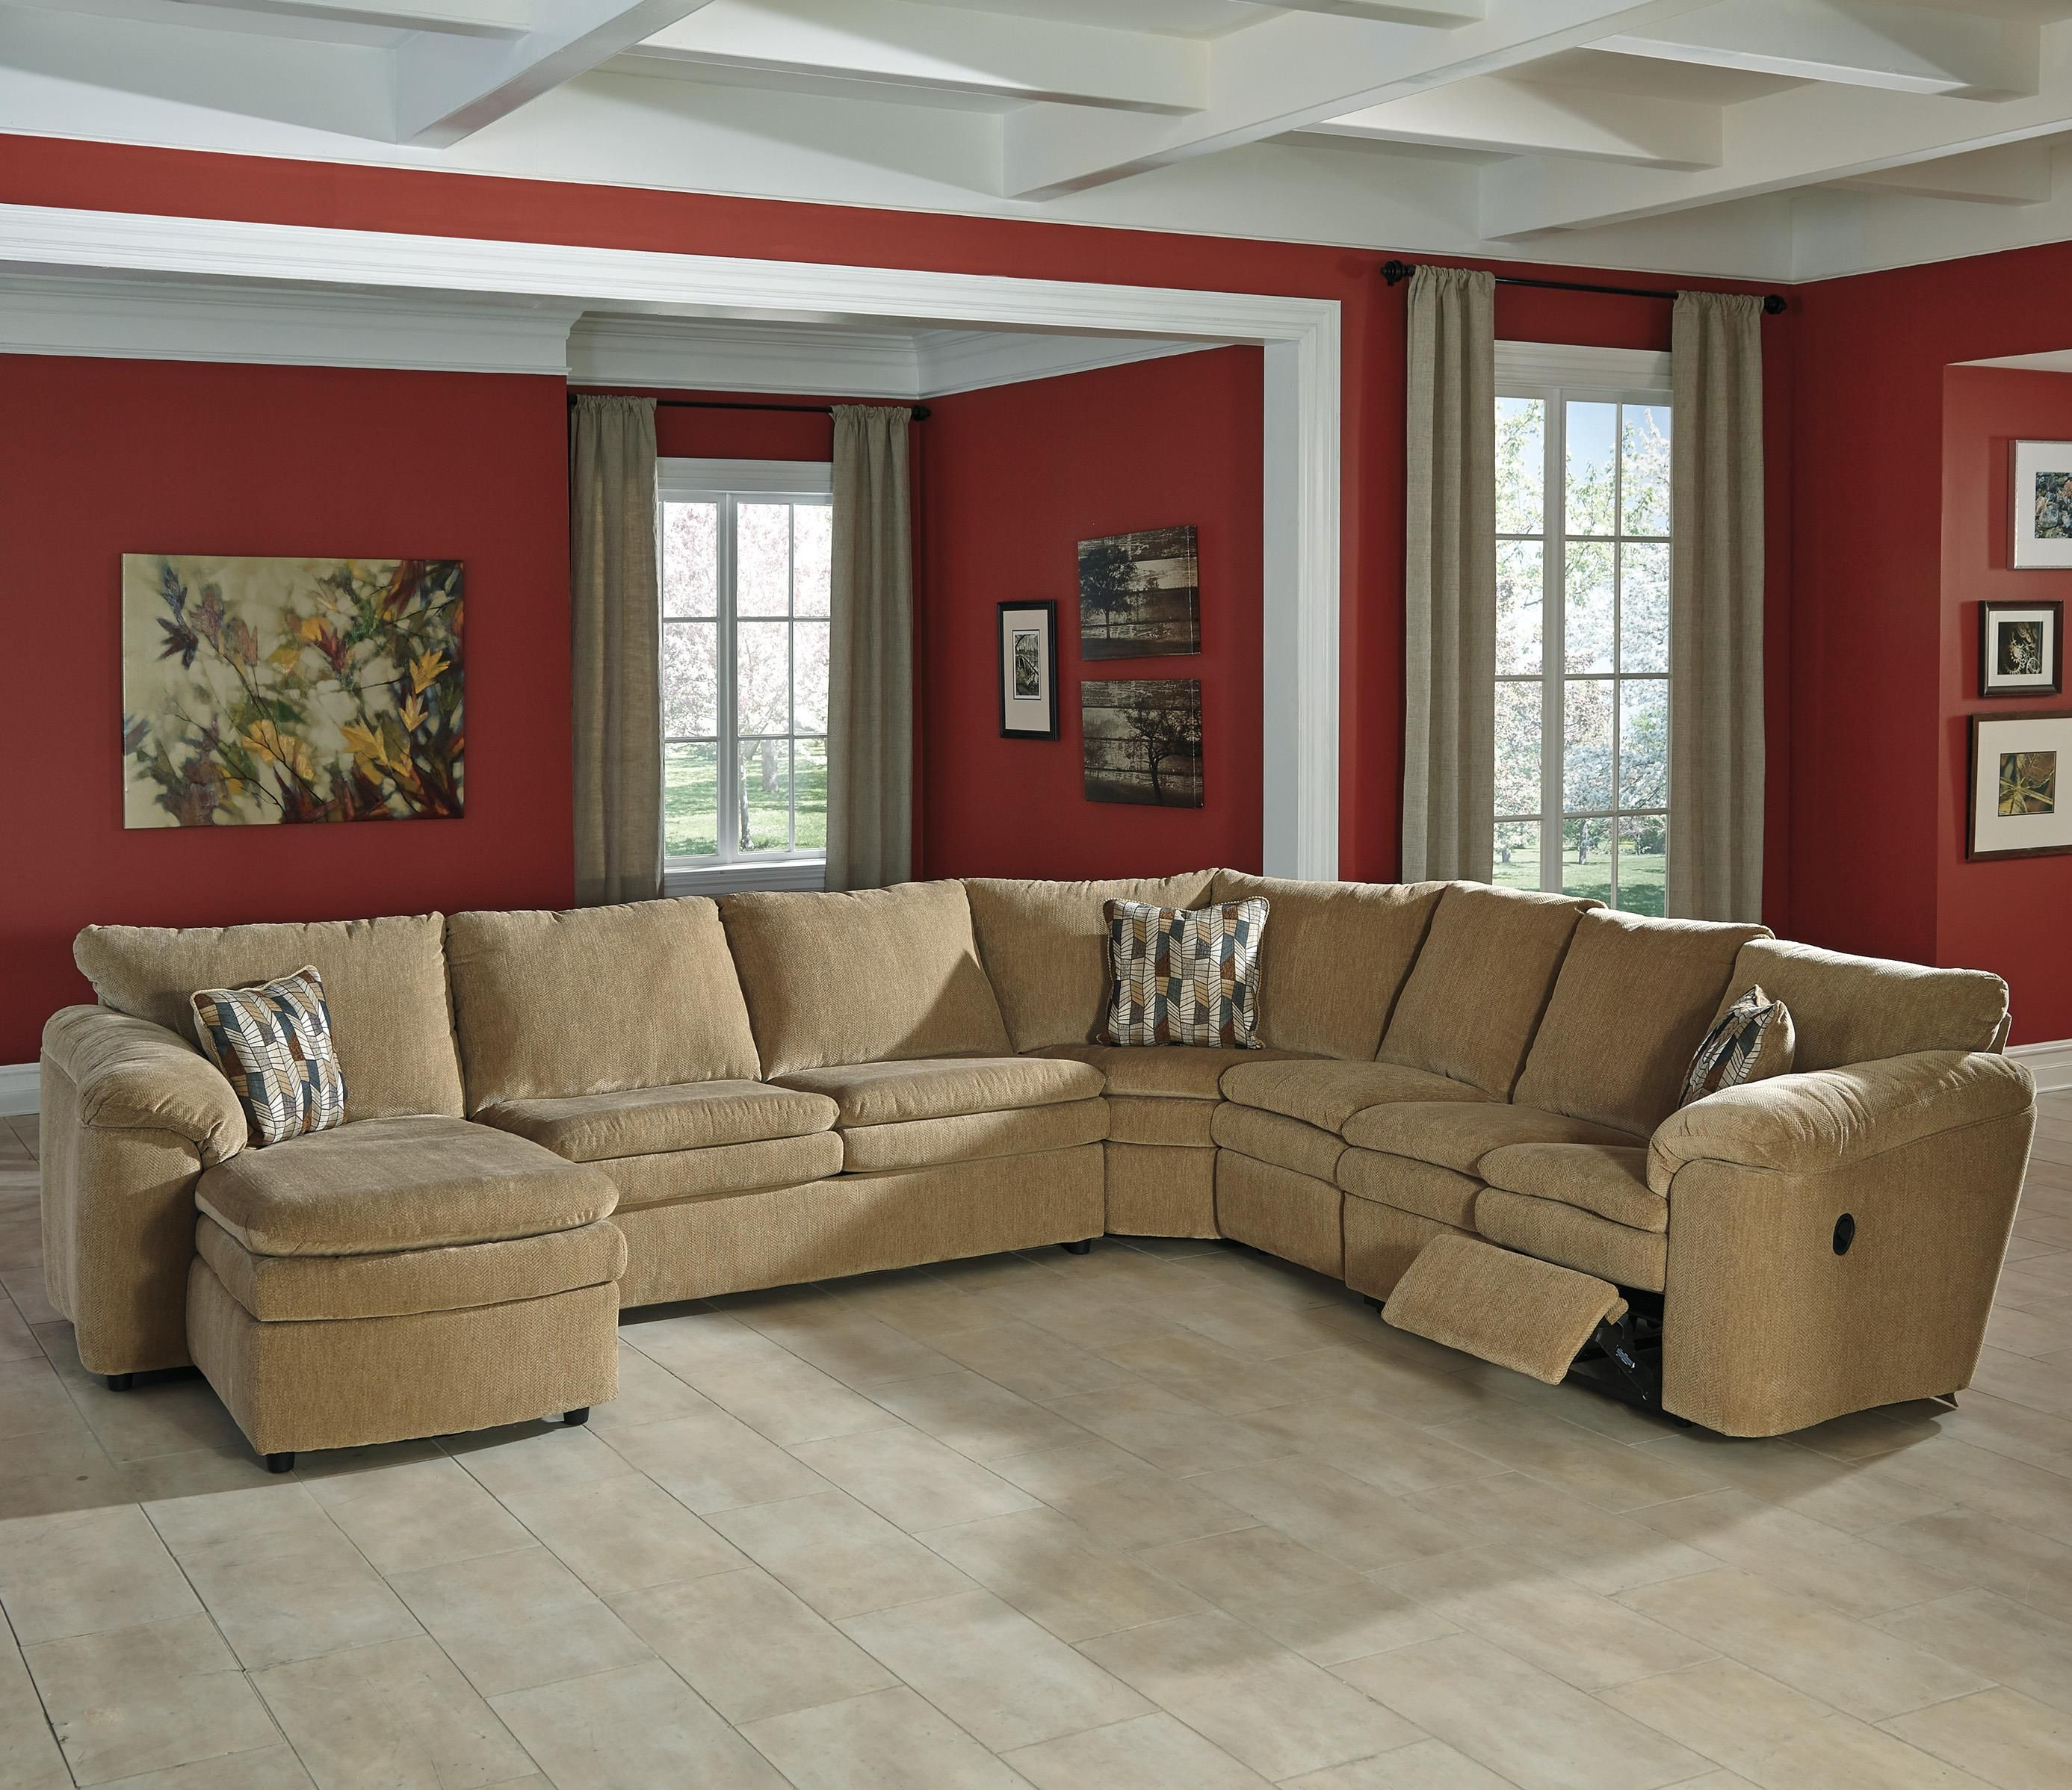 Pin By Becks Furniture On Ideas For The House Sectional Sofa With Recliner Reclining Sectional Sectional Sofa